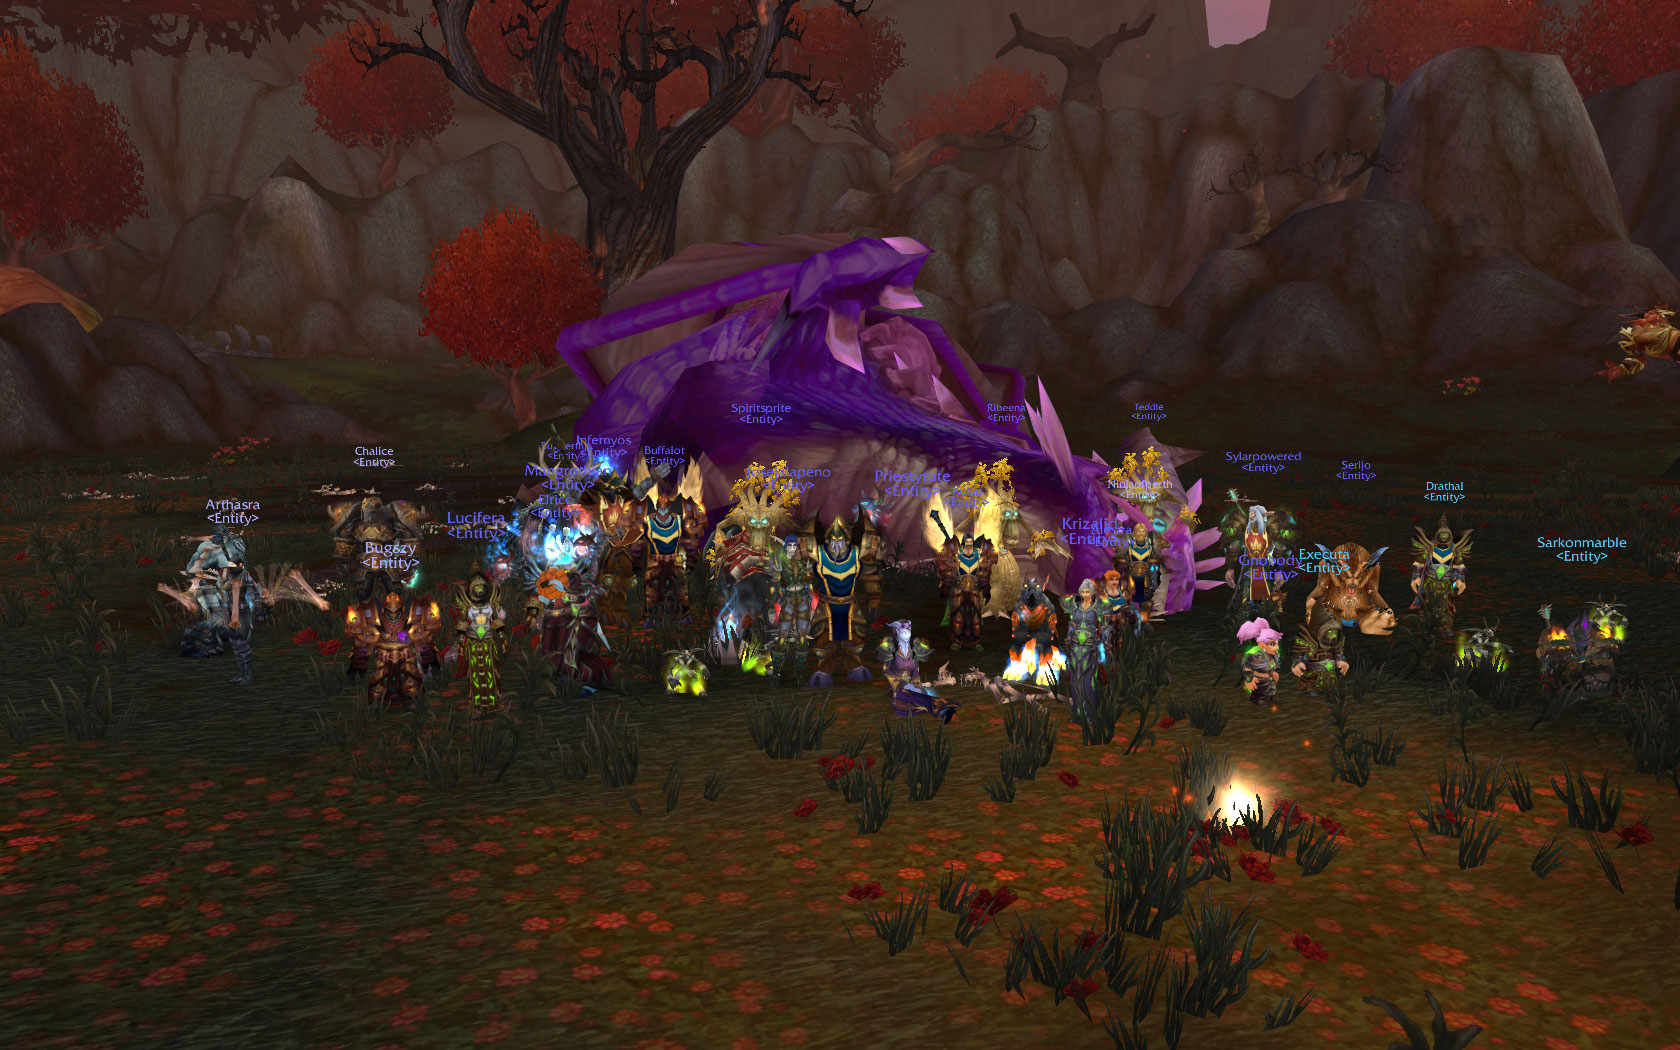 Entity back online! In World of Warcraft!